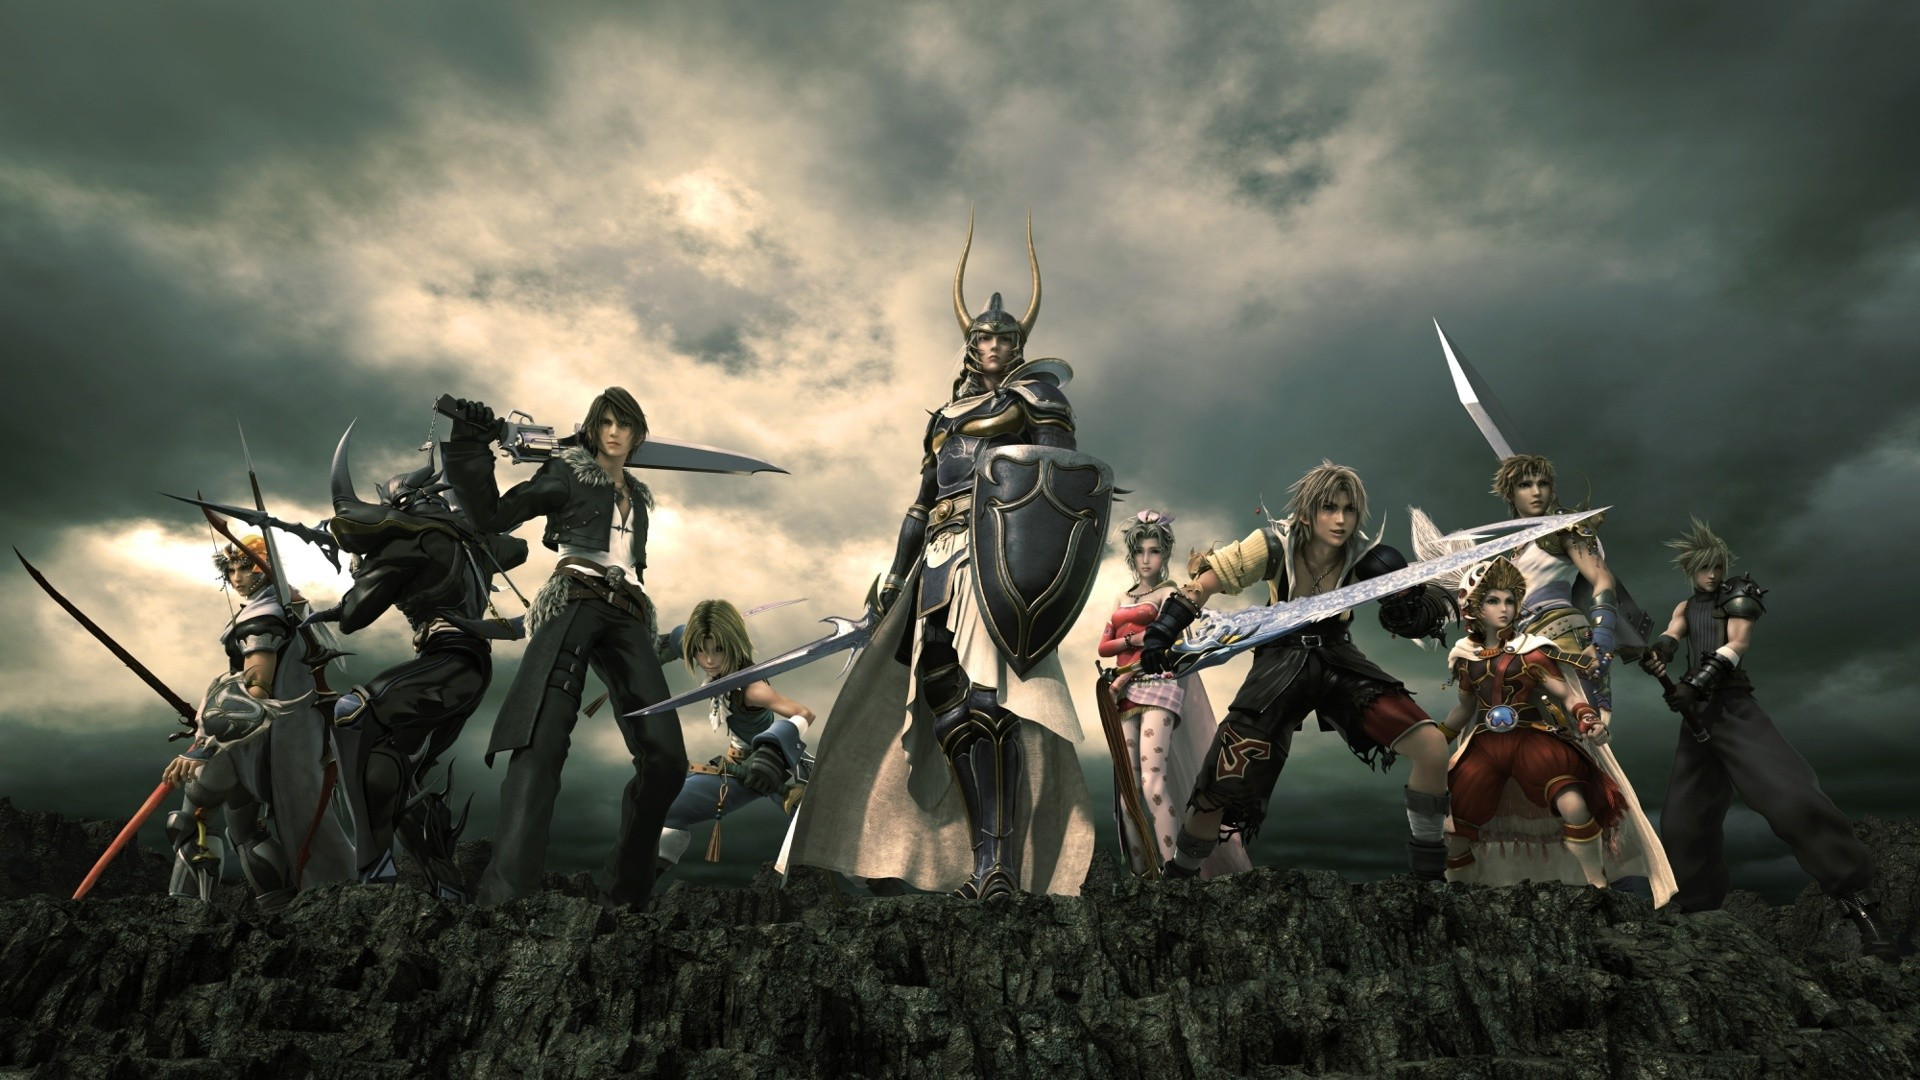 Heroes are preparing for battle Final Fantasy xv